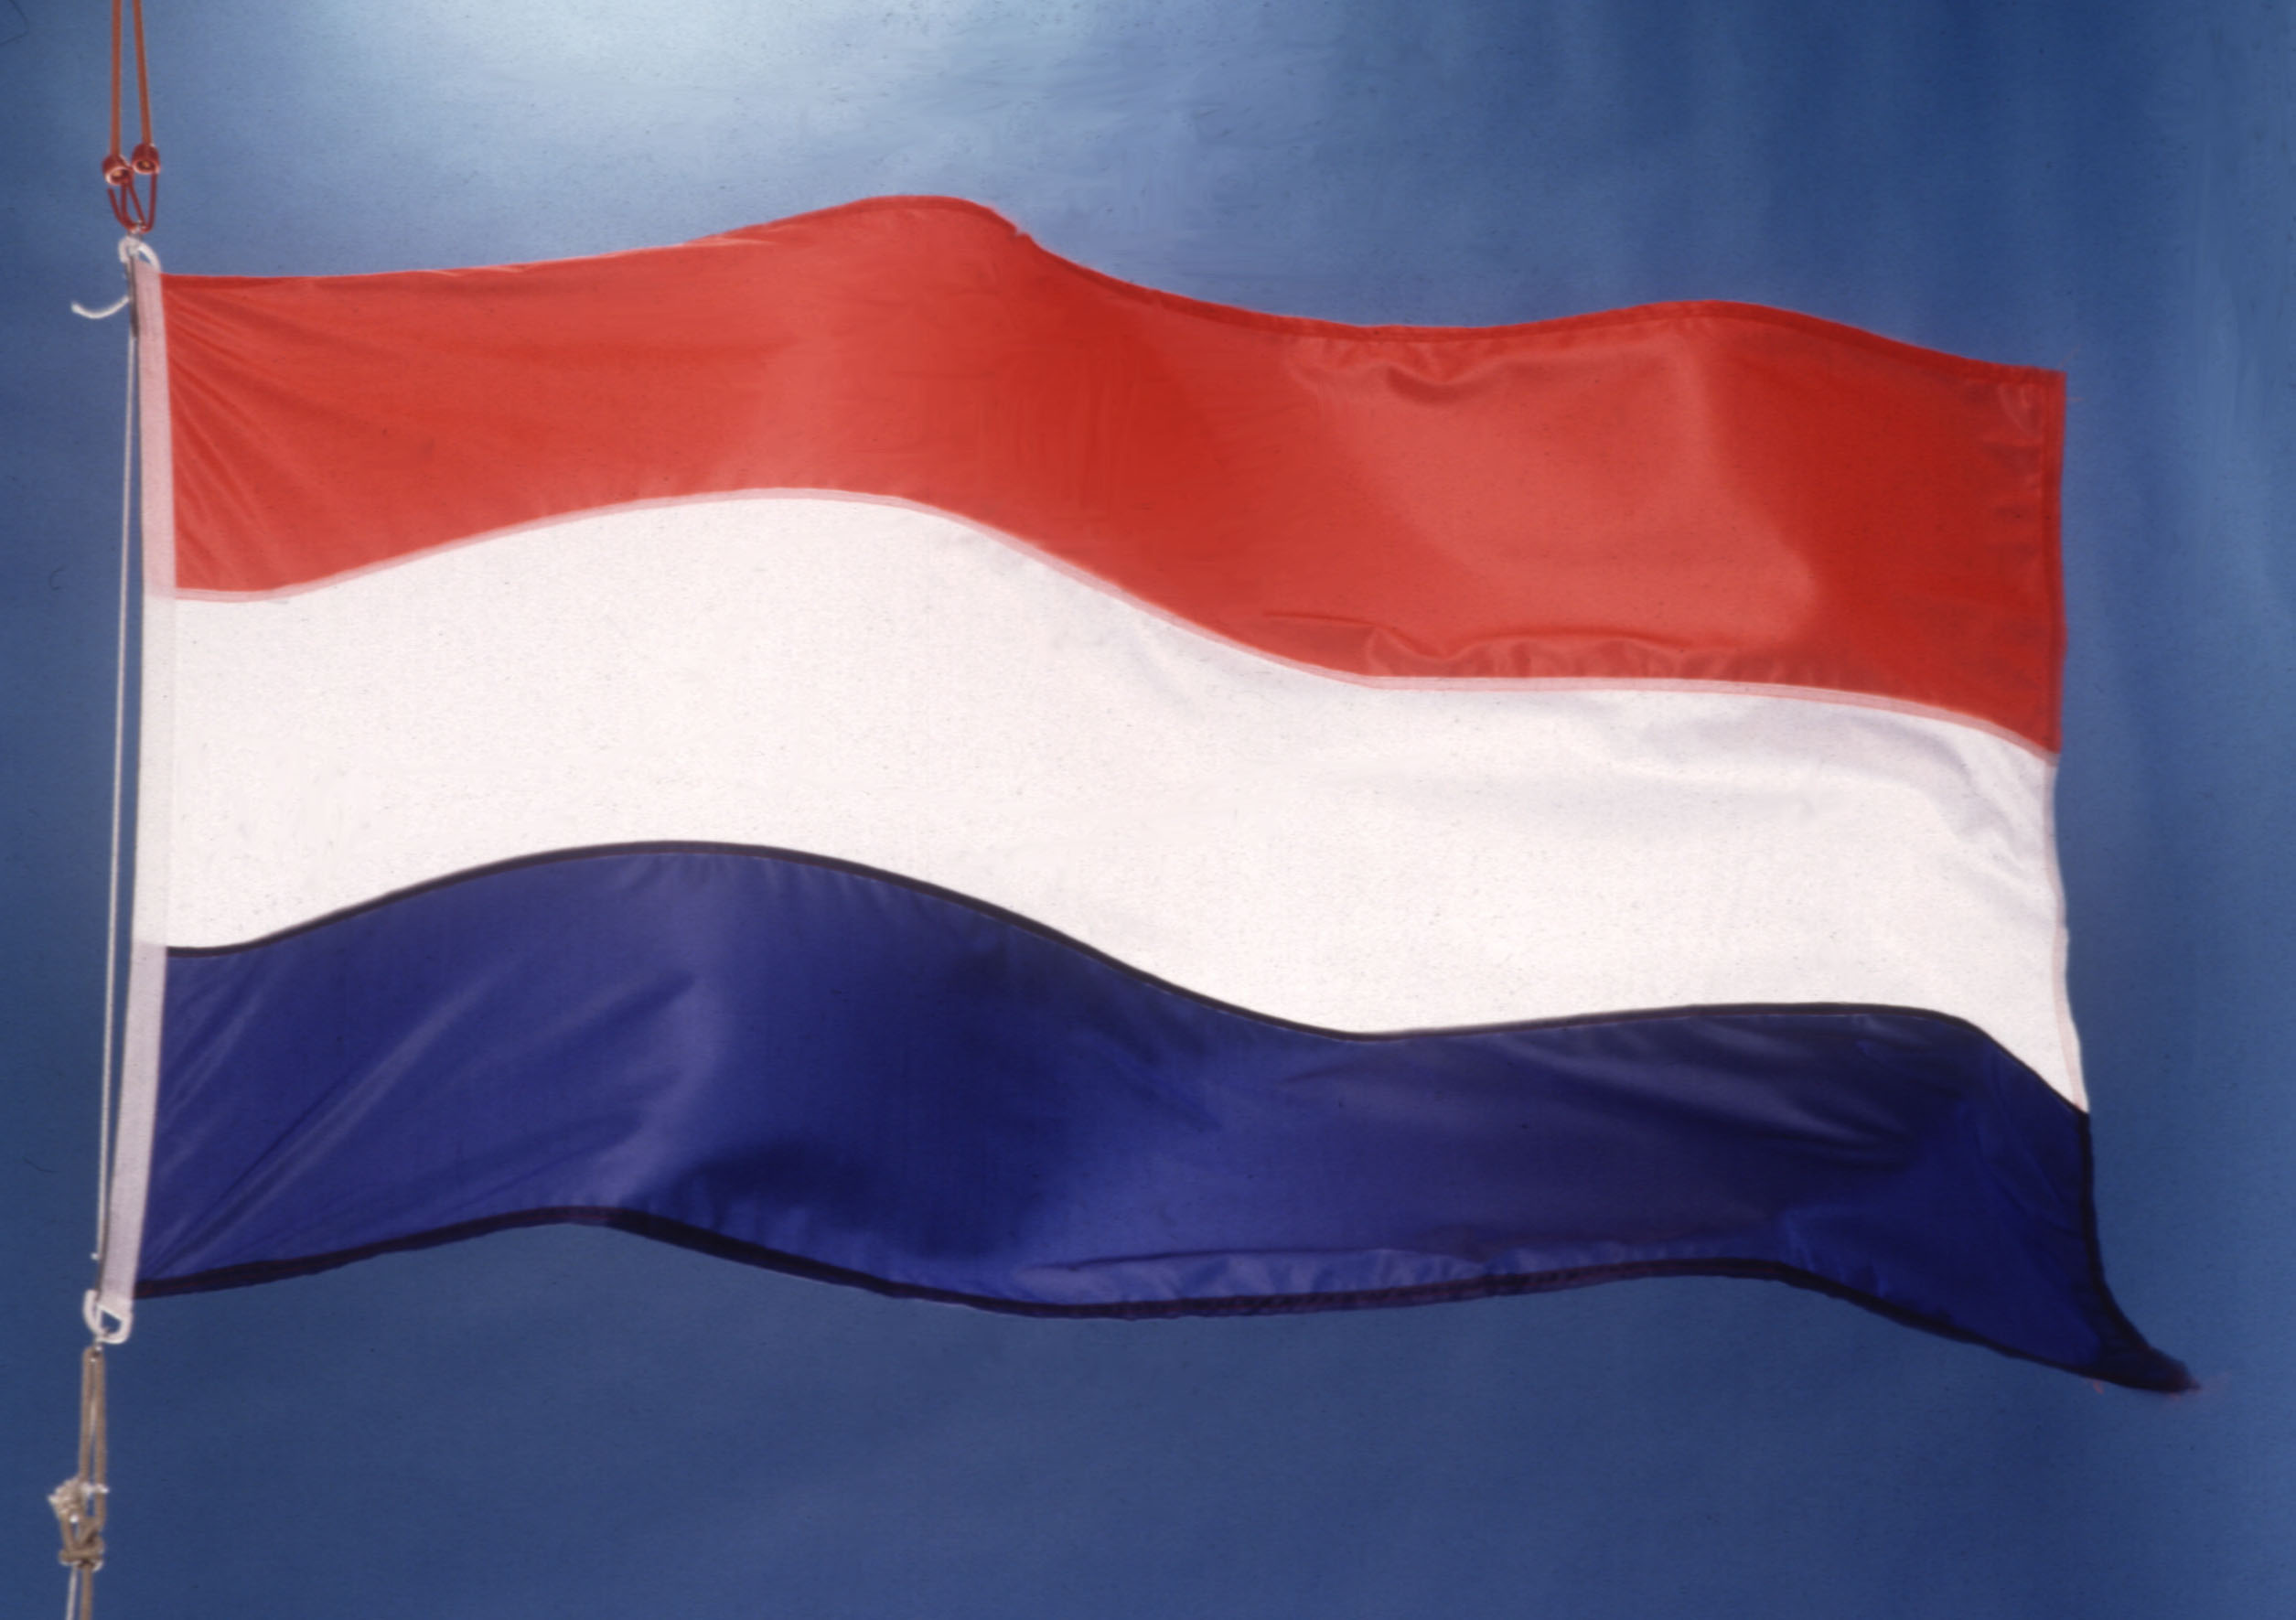 Bron: http://europa.eu.int/comm/mediatheque/photo/select/drapeaux/p ...: www.europa-nu.nl/id/vgpwnlnlc0zh/vlag_nederland_wapperend